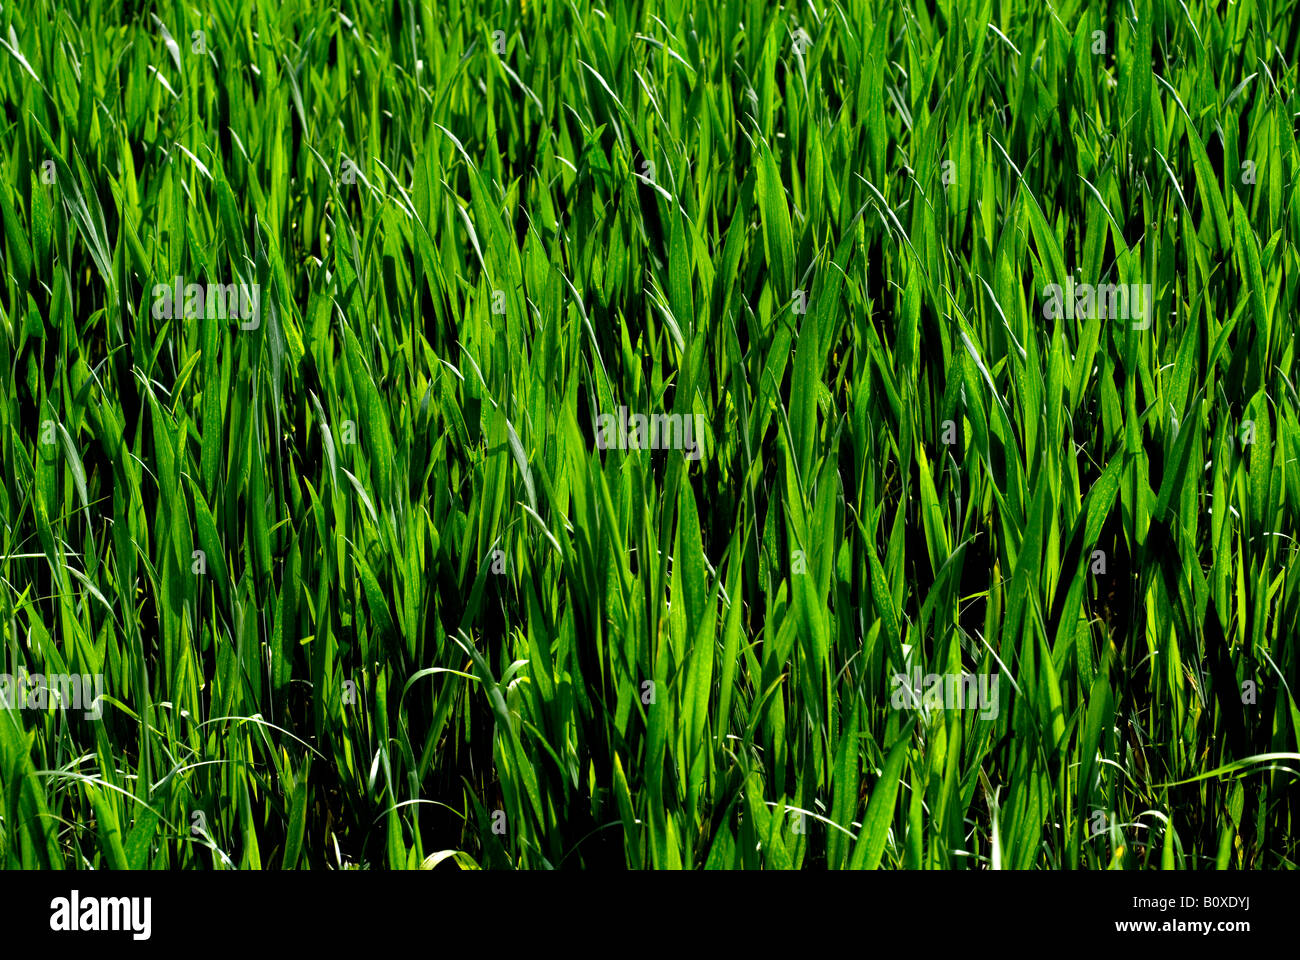 WHEATFIELD WHEAT FIELD YOUNG GREEN PLANTS - Stock Image